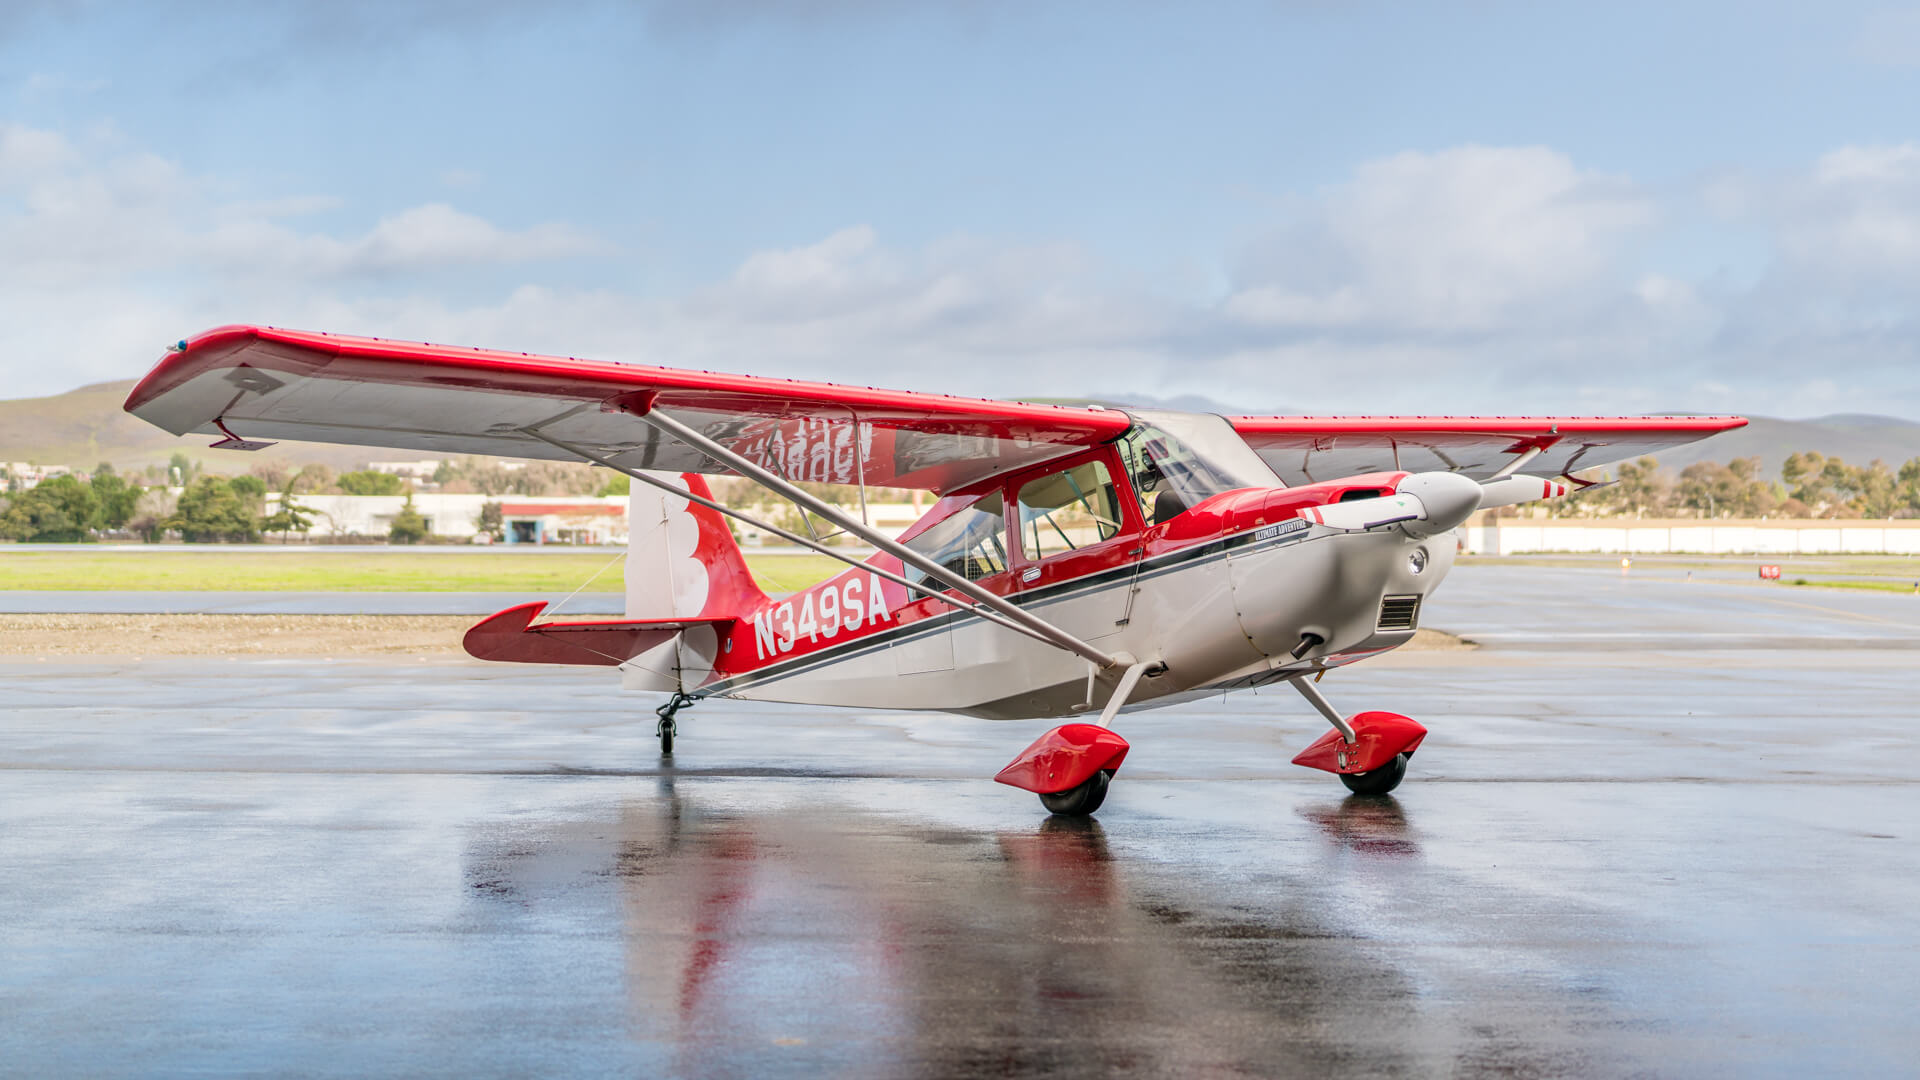 Tailwheel endorsement - Learn how to fly a tailwheel, a completely different type of airplane.